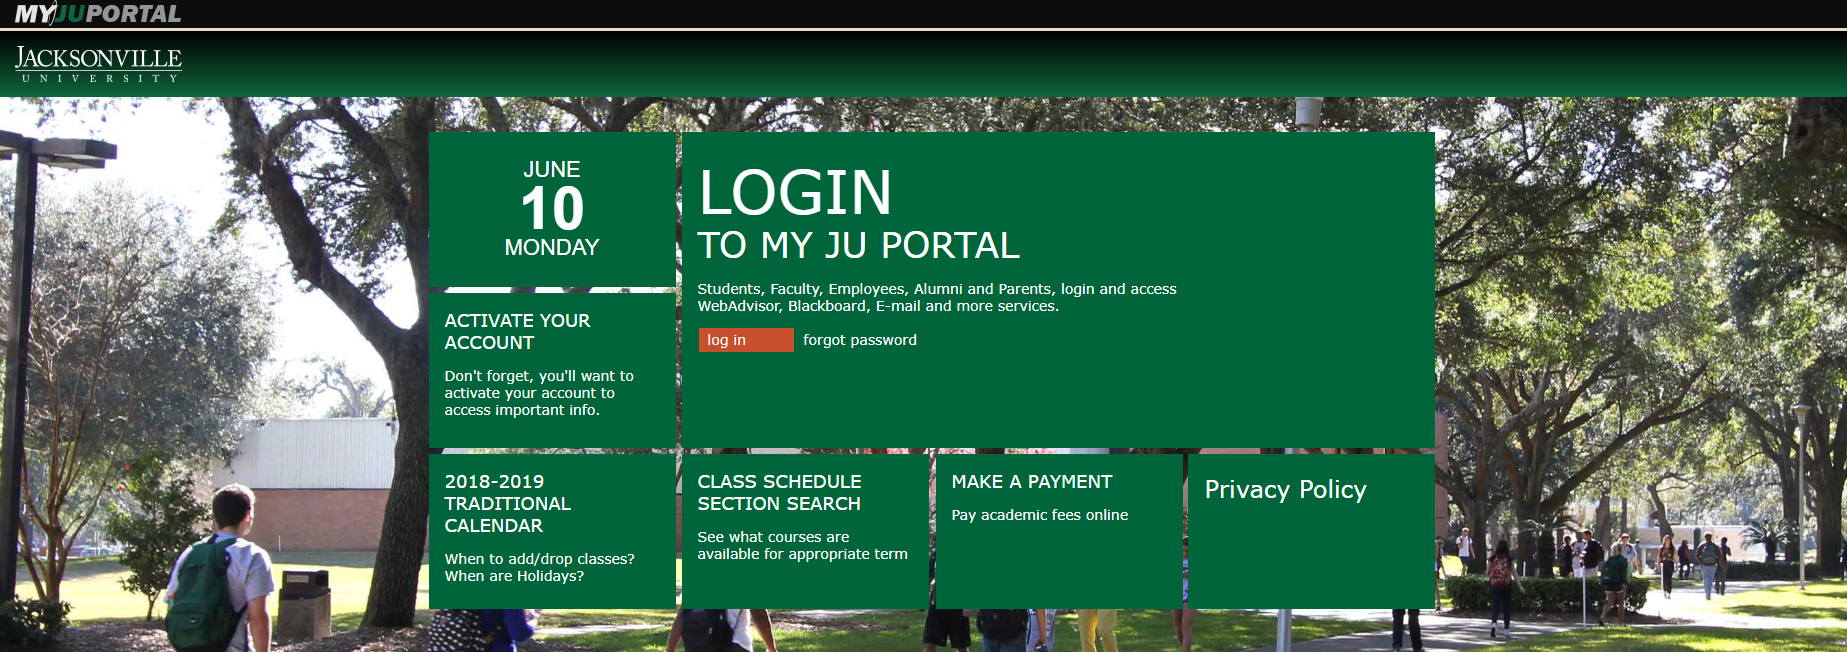 Screenshot of MyJU page, with login button in the center